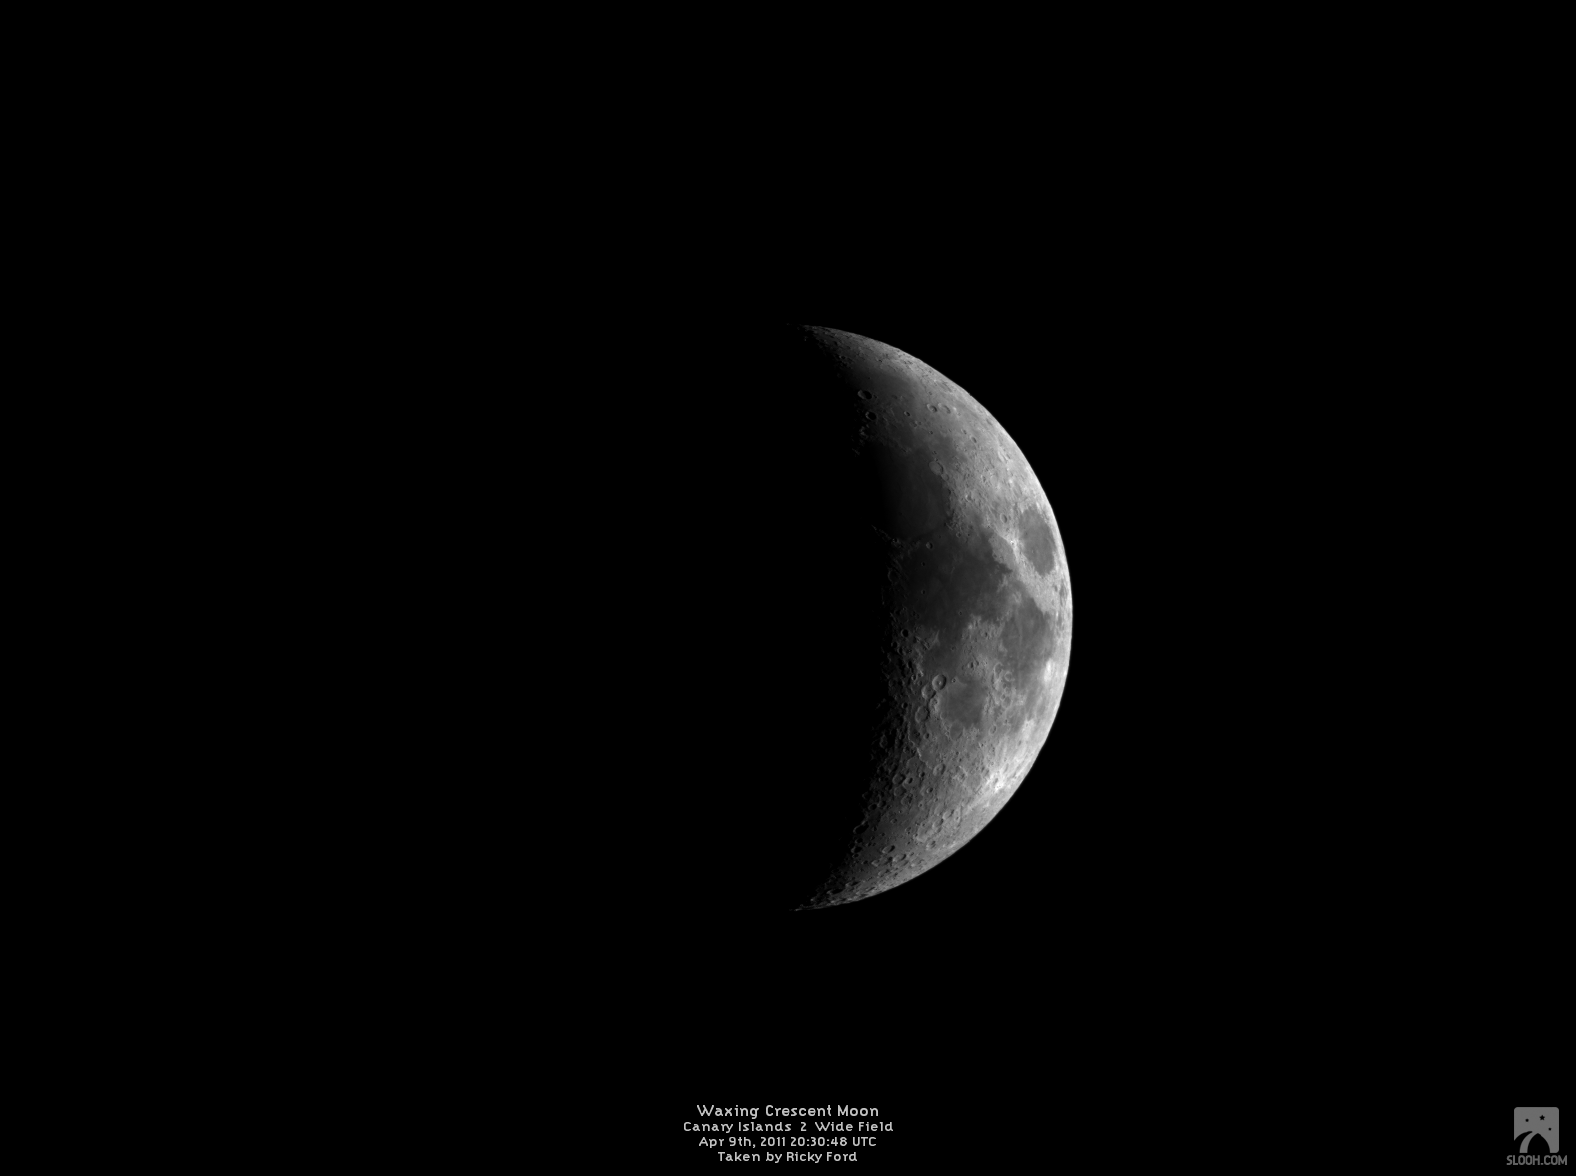 Waxing Crescent Moon Imaged Using Slooh S Canary Islands 2 Wide Field On Apr 9th 2011 At 20 30 48 Utc Moon Images Crescent Moon Moon